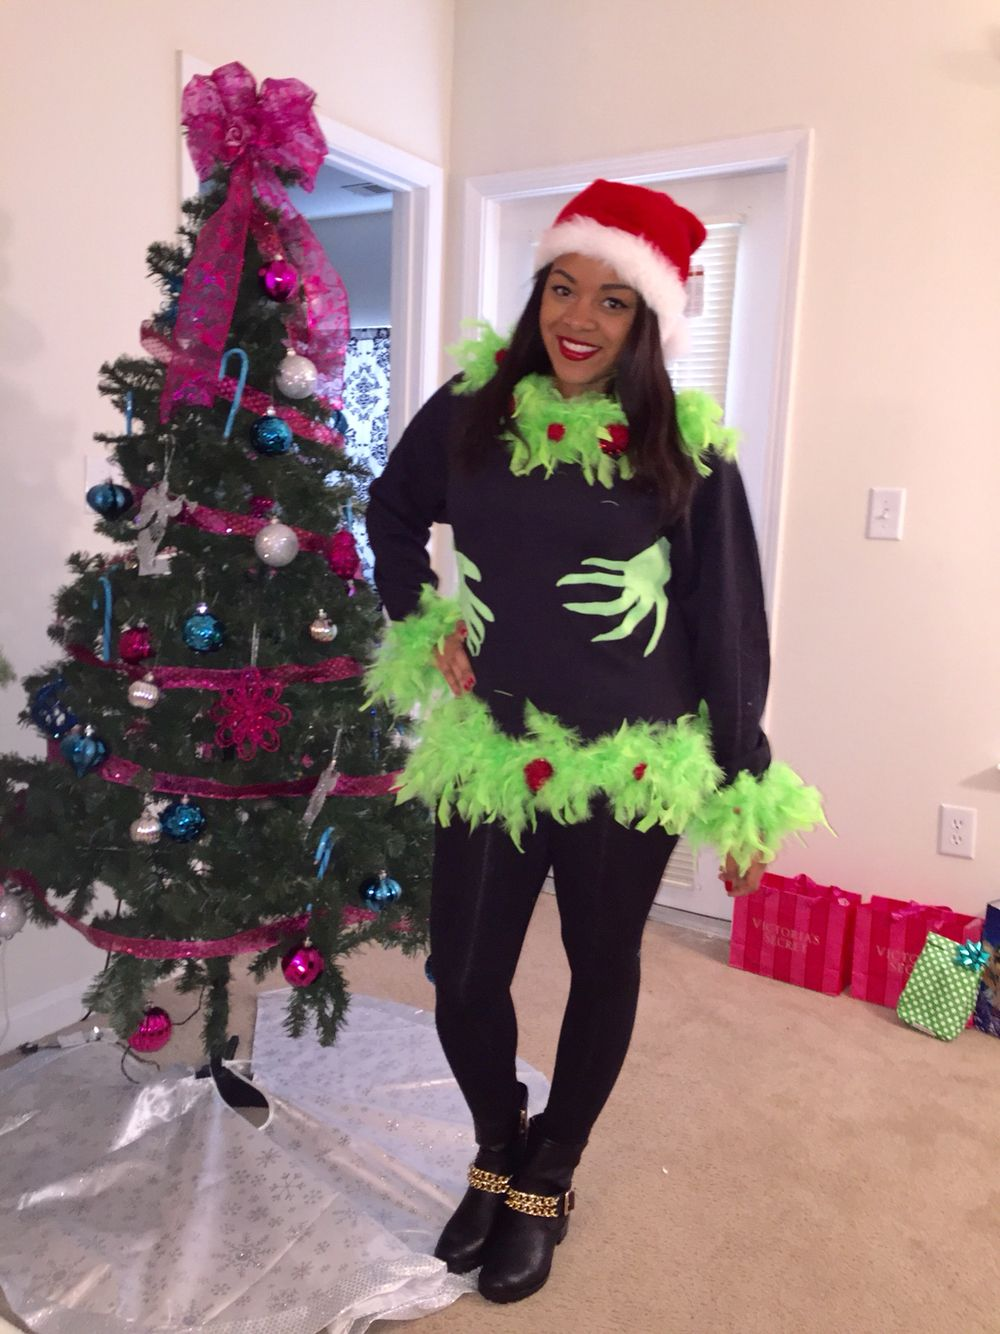 Ugly Christmas Sweaters Pinterest.Pin On Holiday Decorating